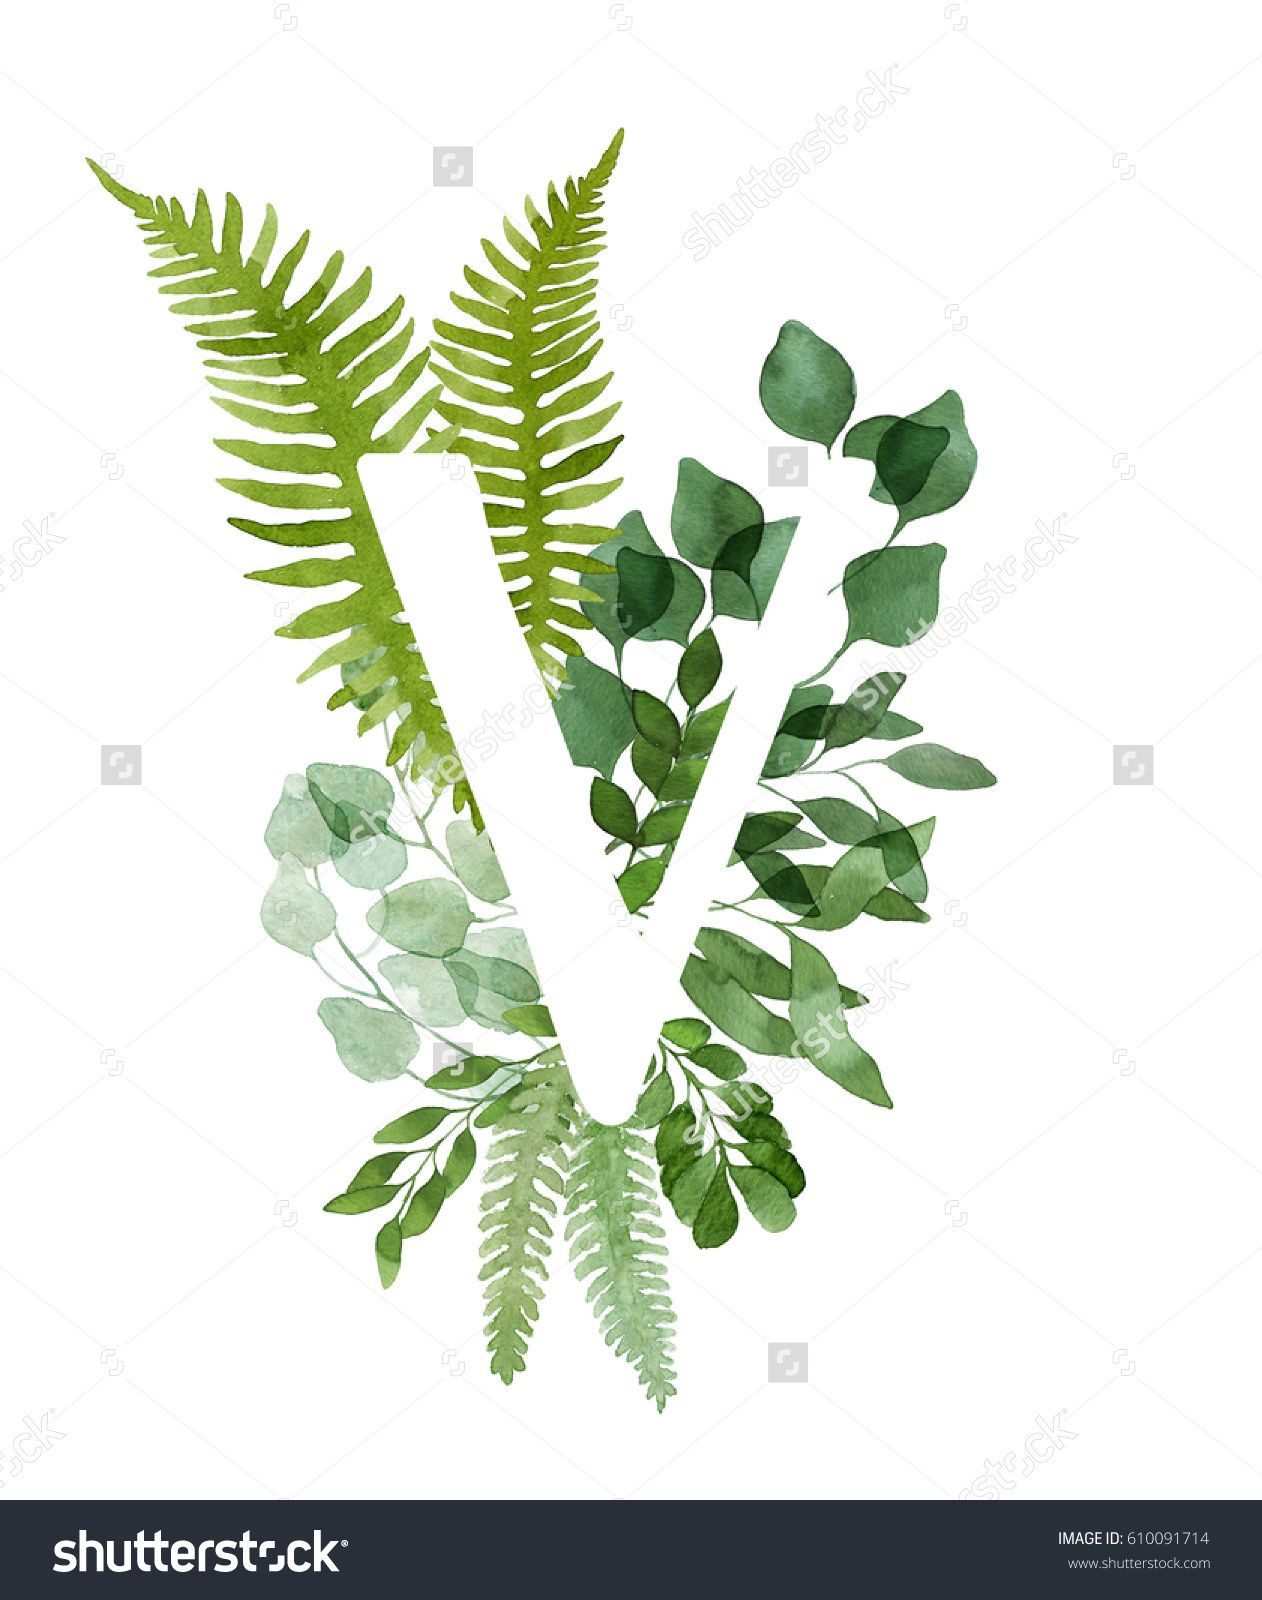 Floral letter V Beautiful green leaves and branches painted with watercolor Watercolor eucalyptus and fern foliage letter Green watercolor monogram